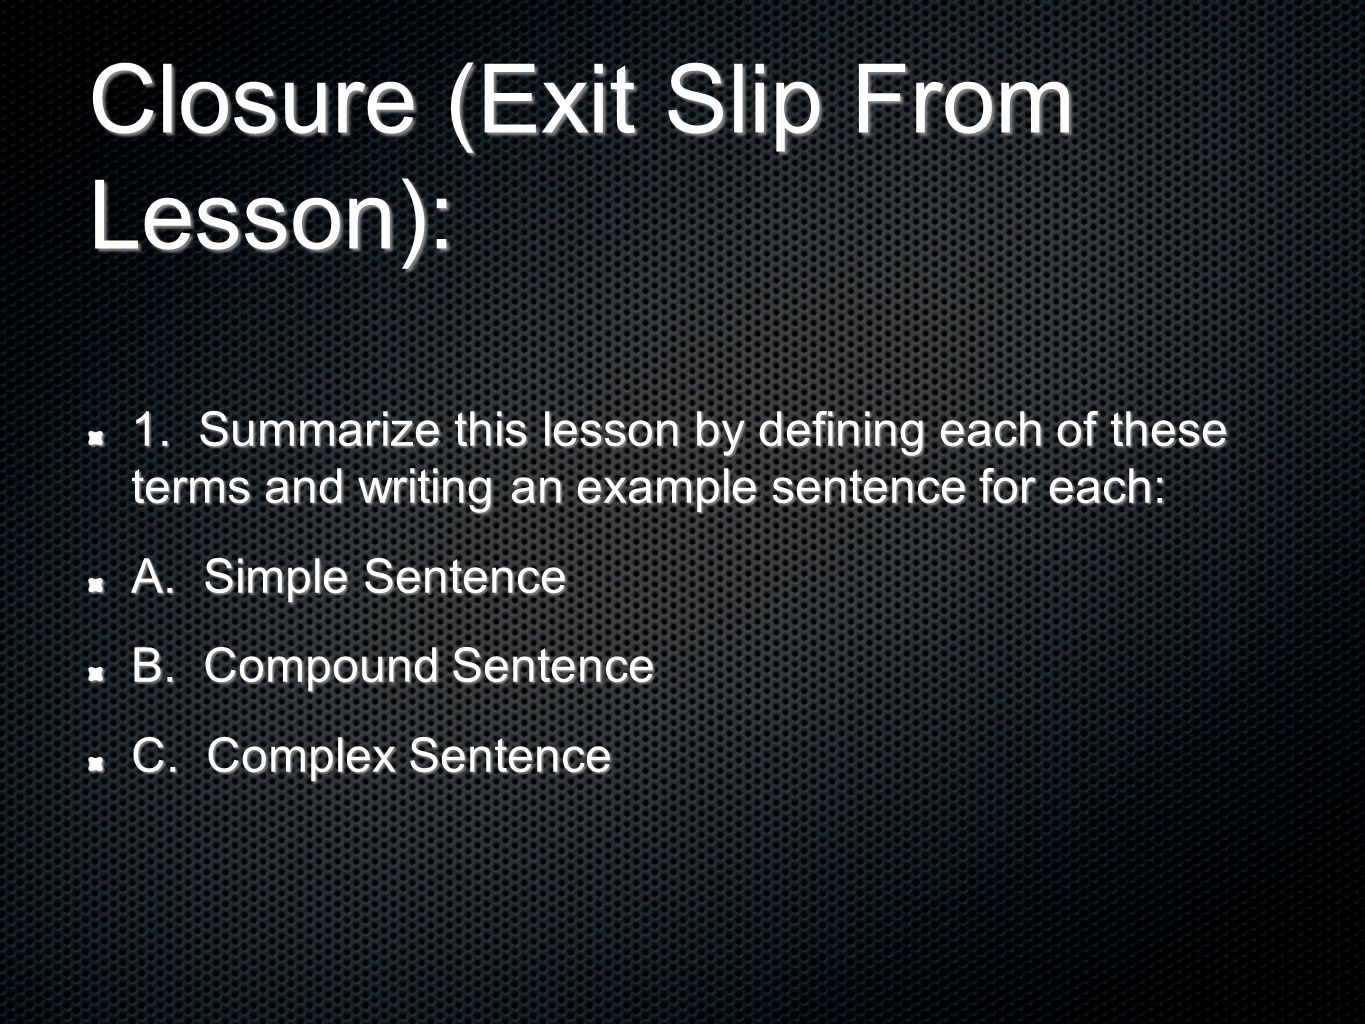 Closure (Exit Slip From Lesson):